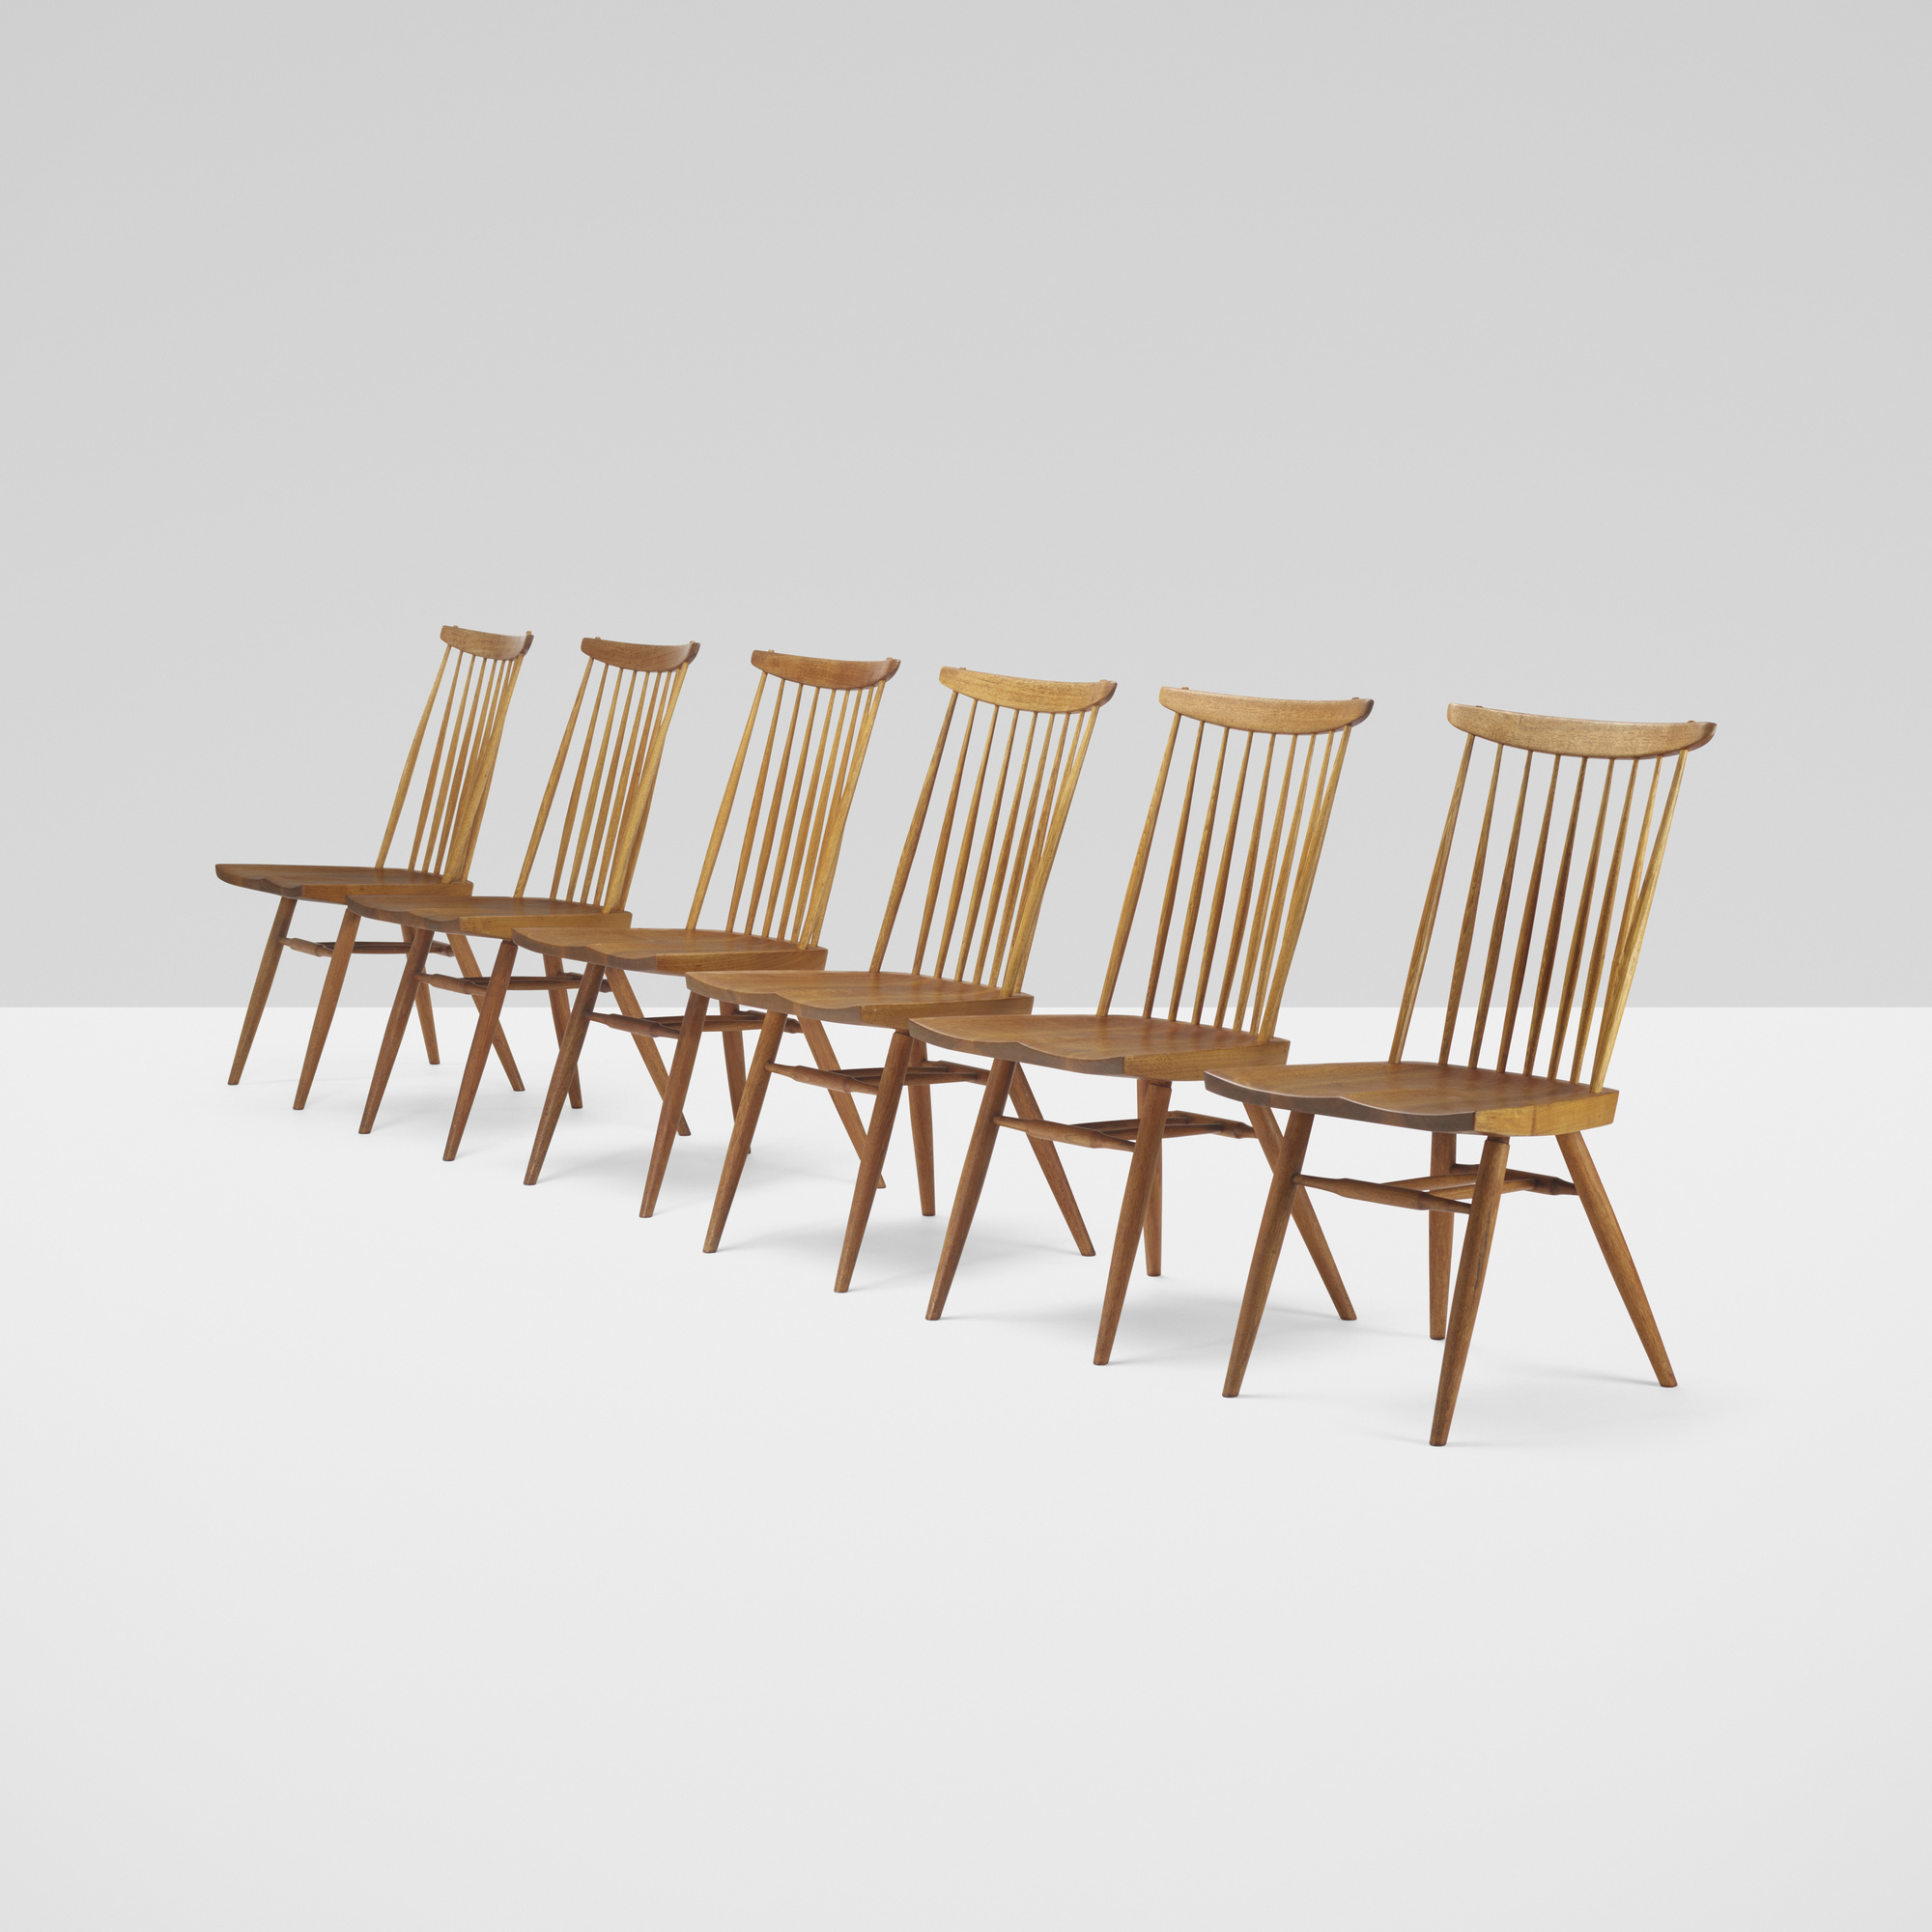 124: George Nakashima / New chairs, set of six (1 of 3)